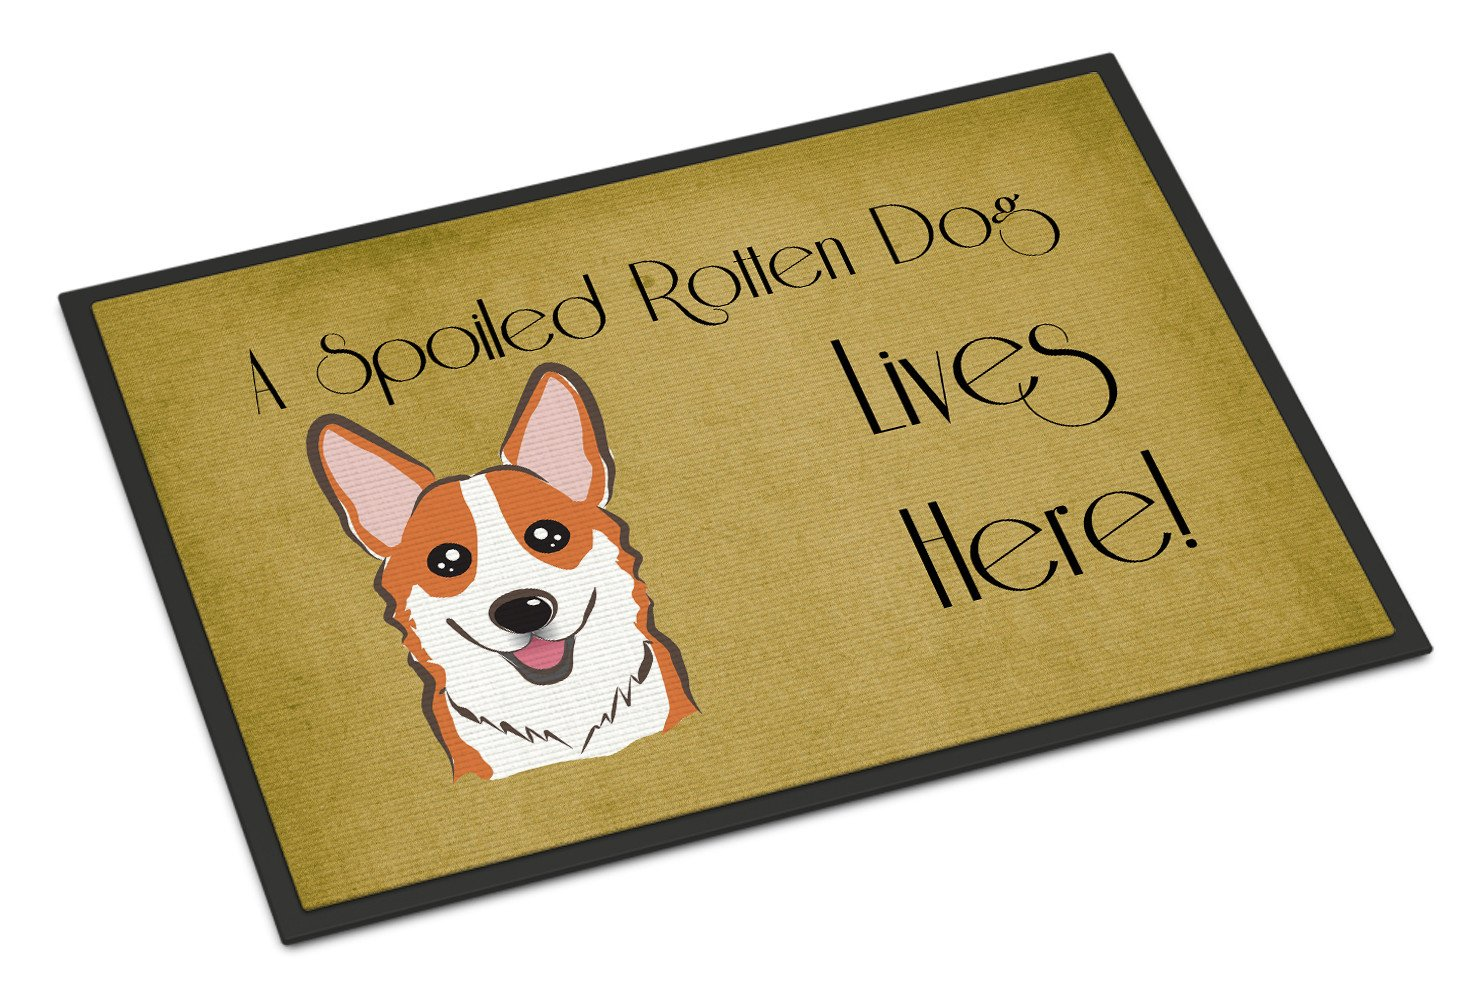 Red Corgi Spoiled Dog Lives Here Indoor or Outdoor Mat 18x27 BB1502MAT - the-store.com